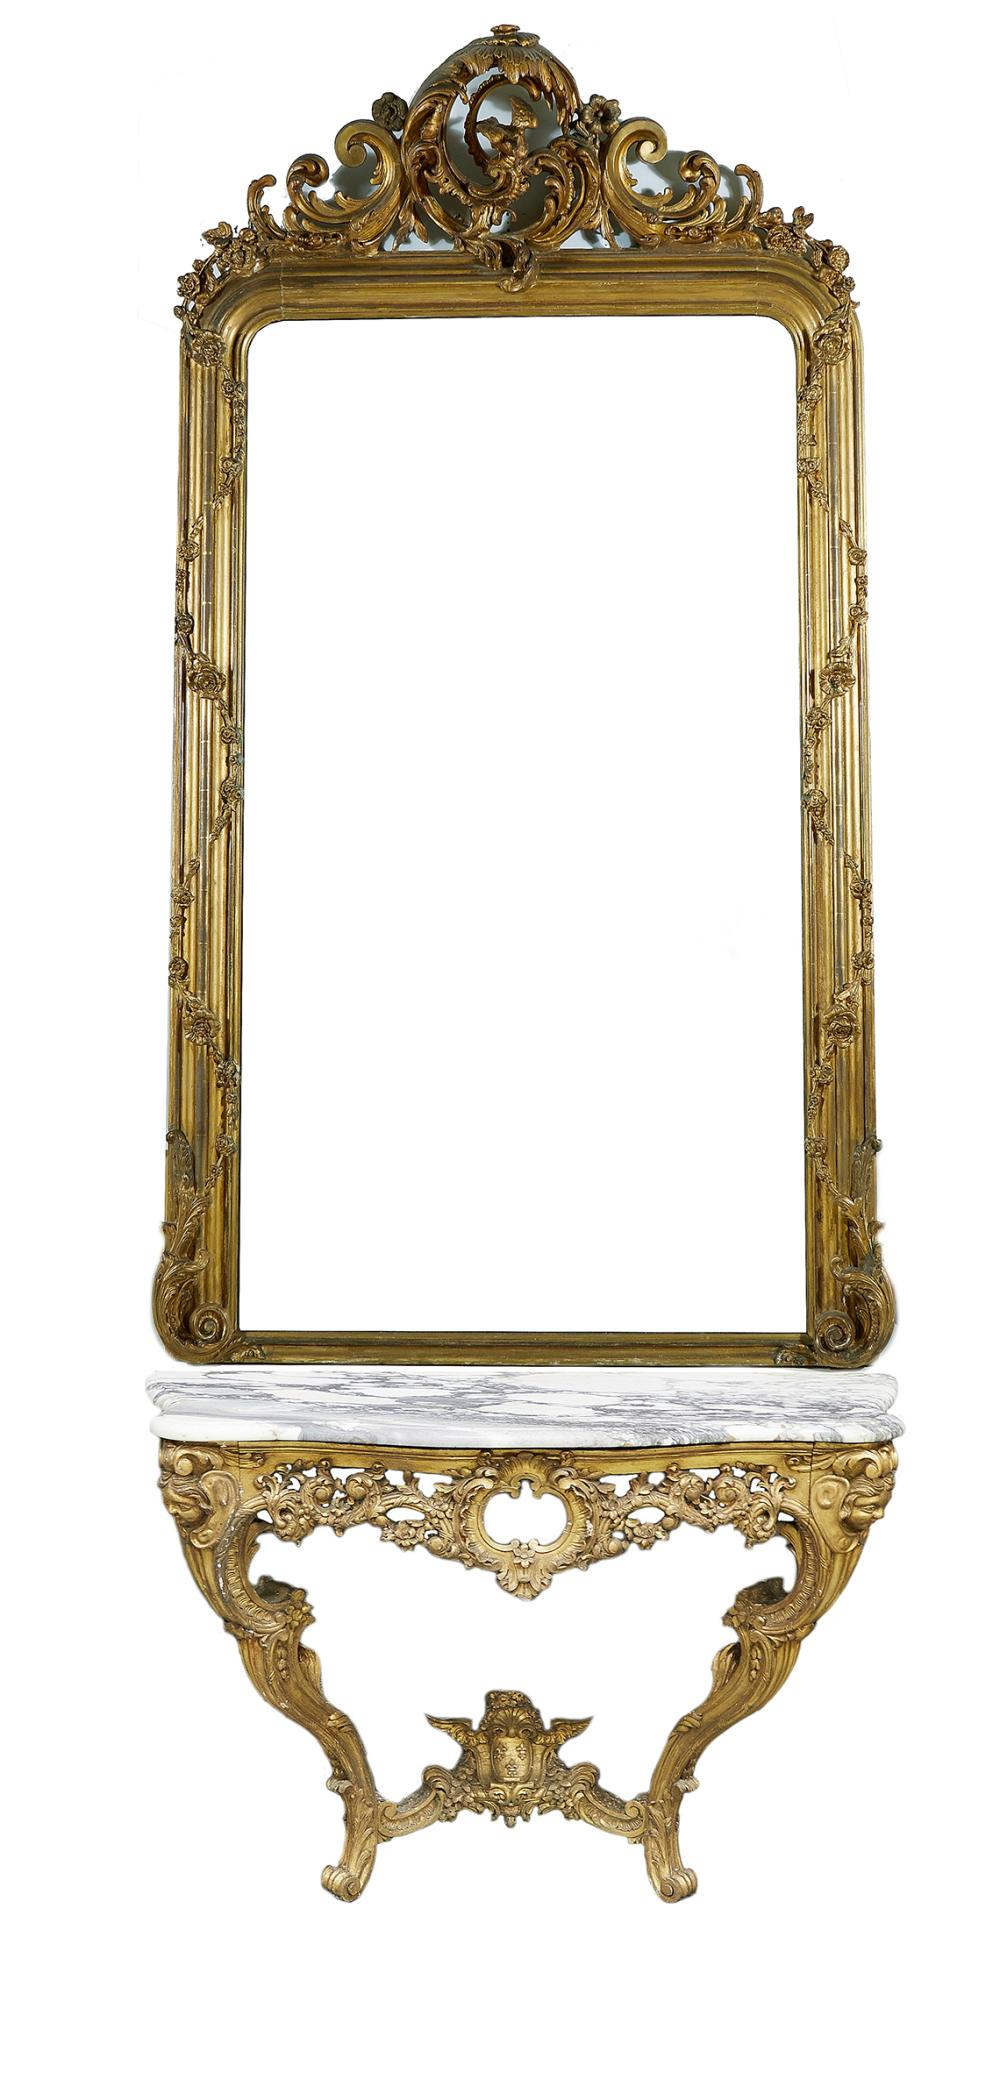 Louis XV style pier mirror and marbletop console table (2pcs)